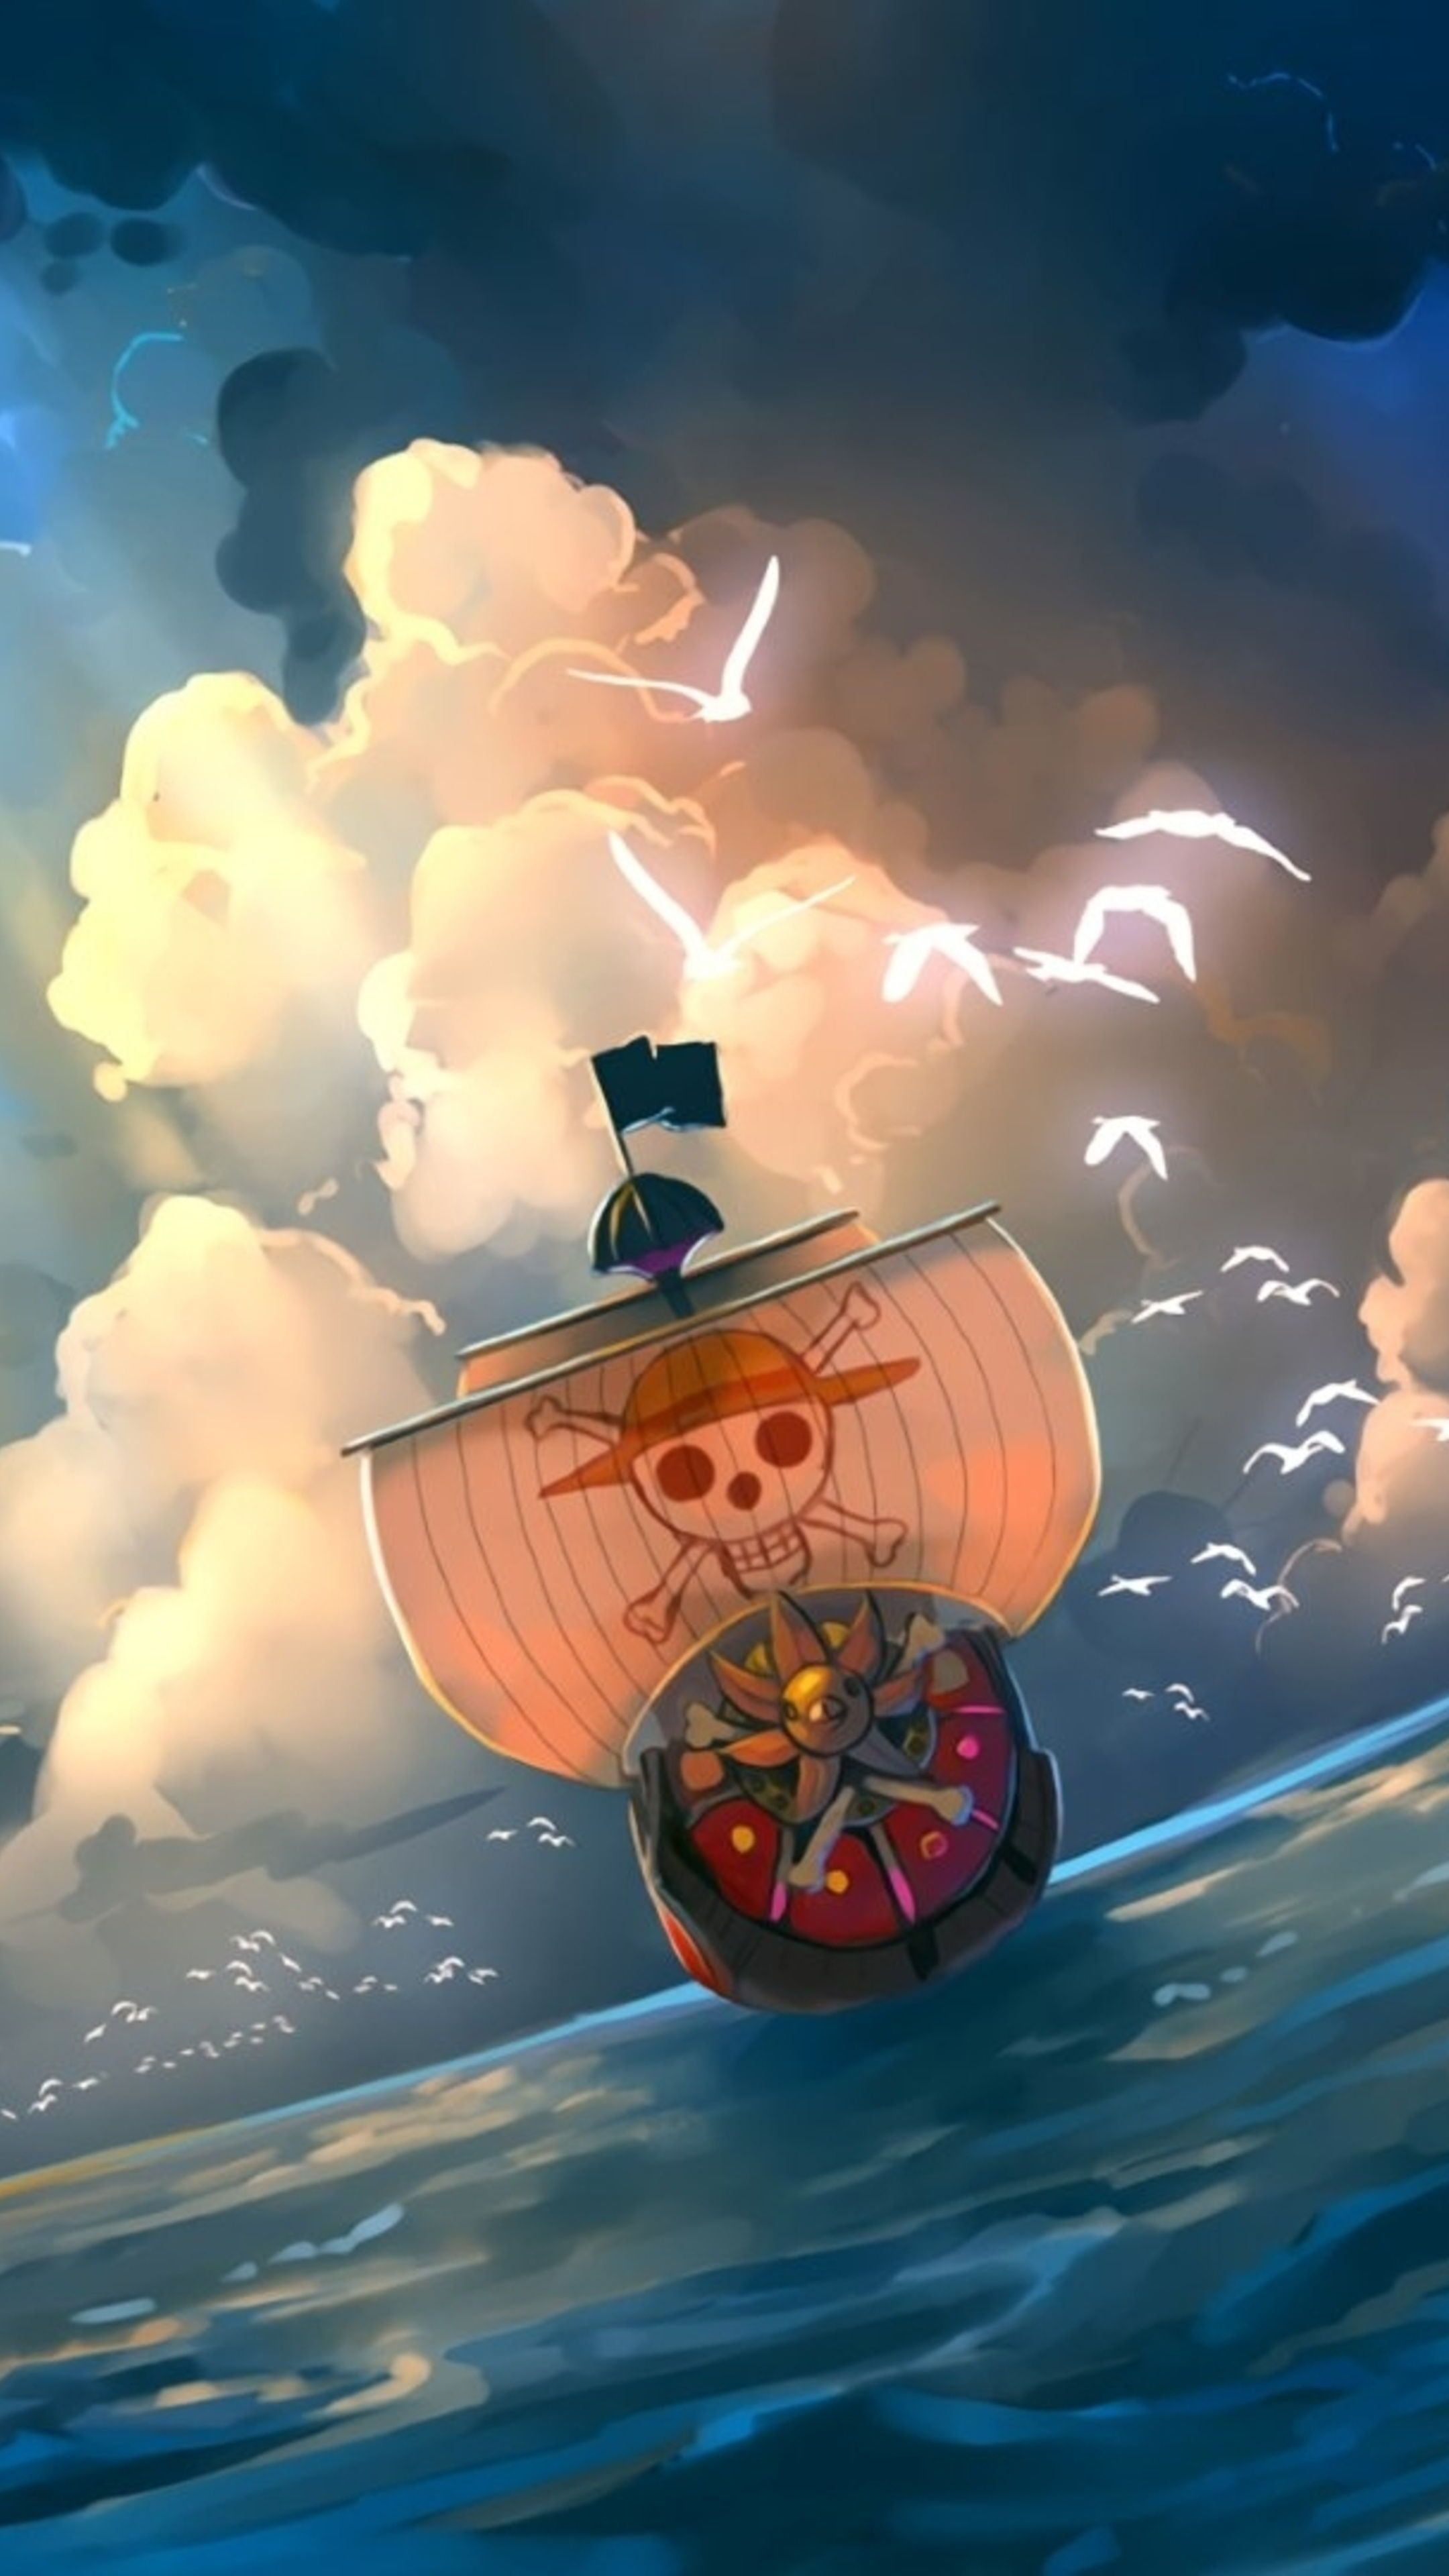 One Piece Hd Wallpapers In 2020 One Piece Wallpaper Iphone One Piece Anime Manga Anime One Piece